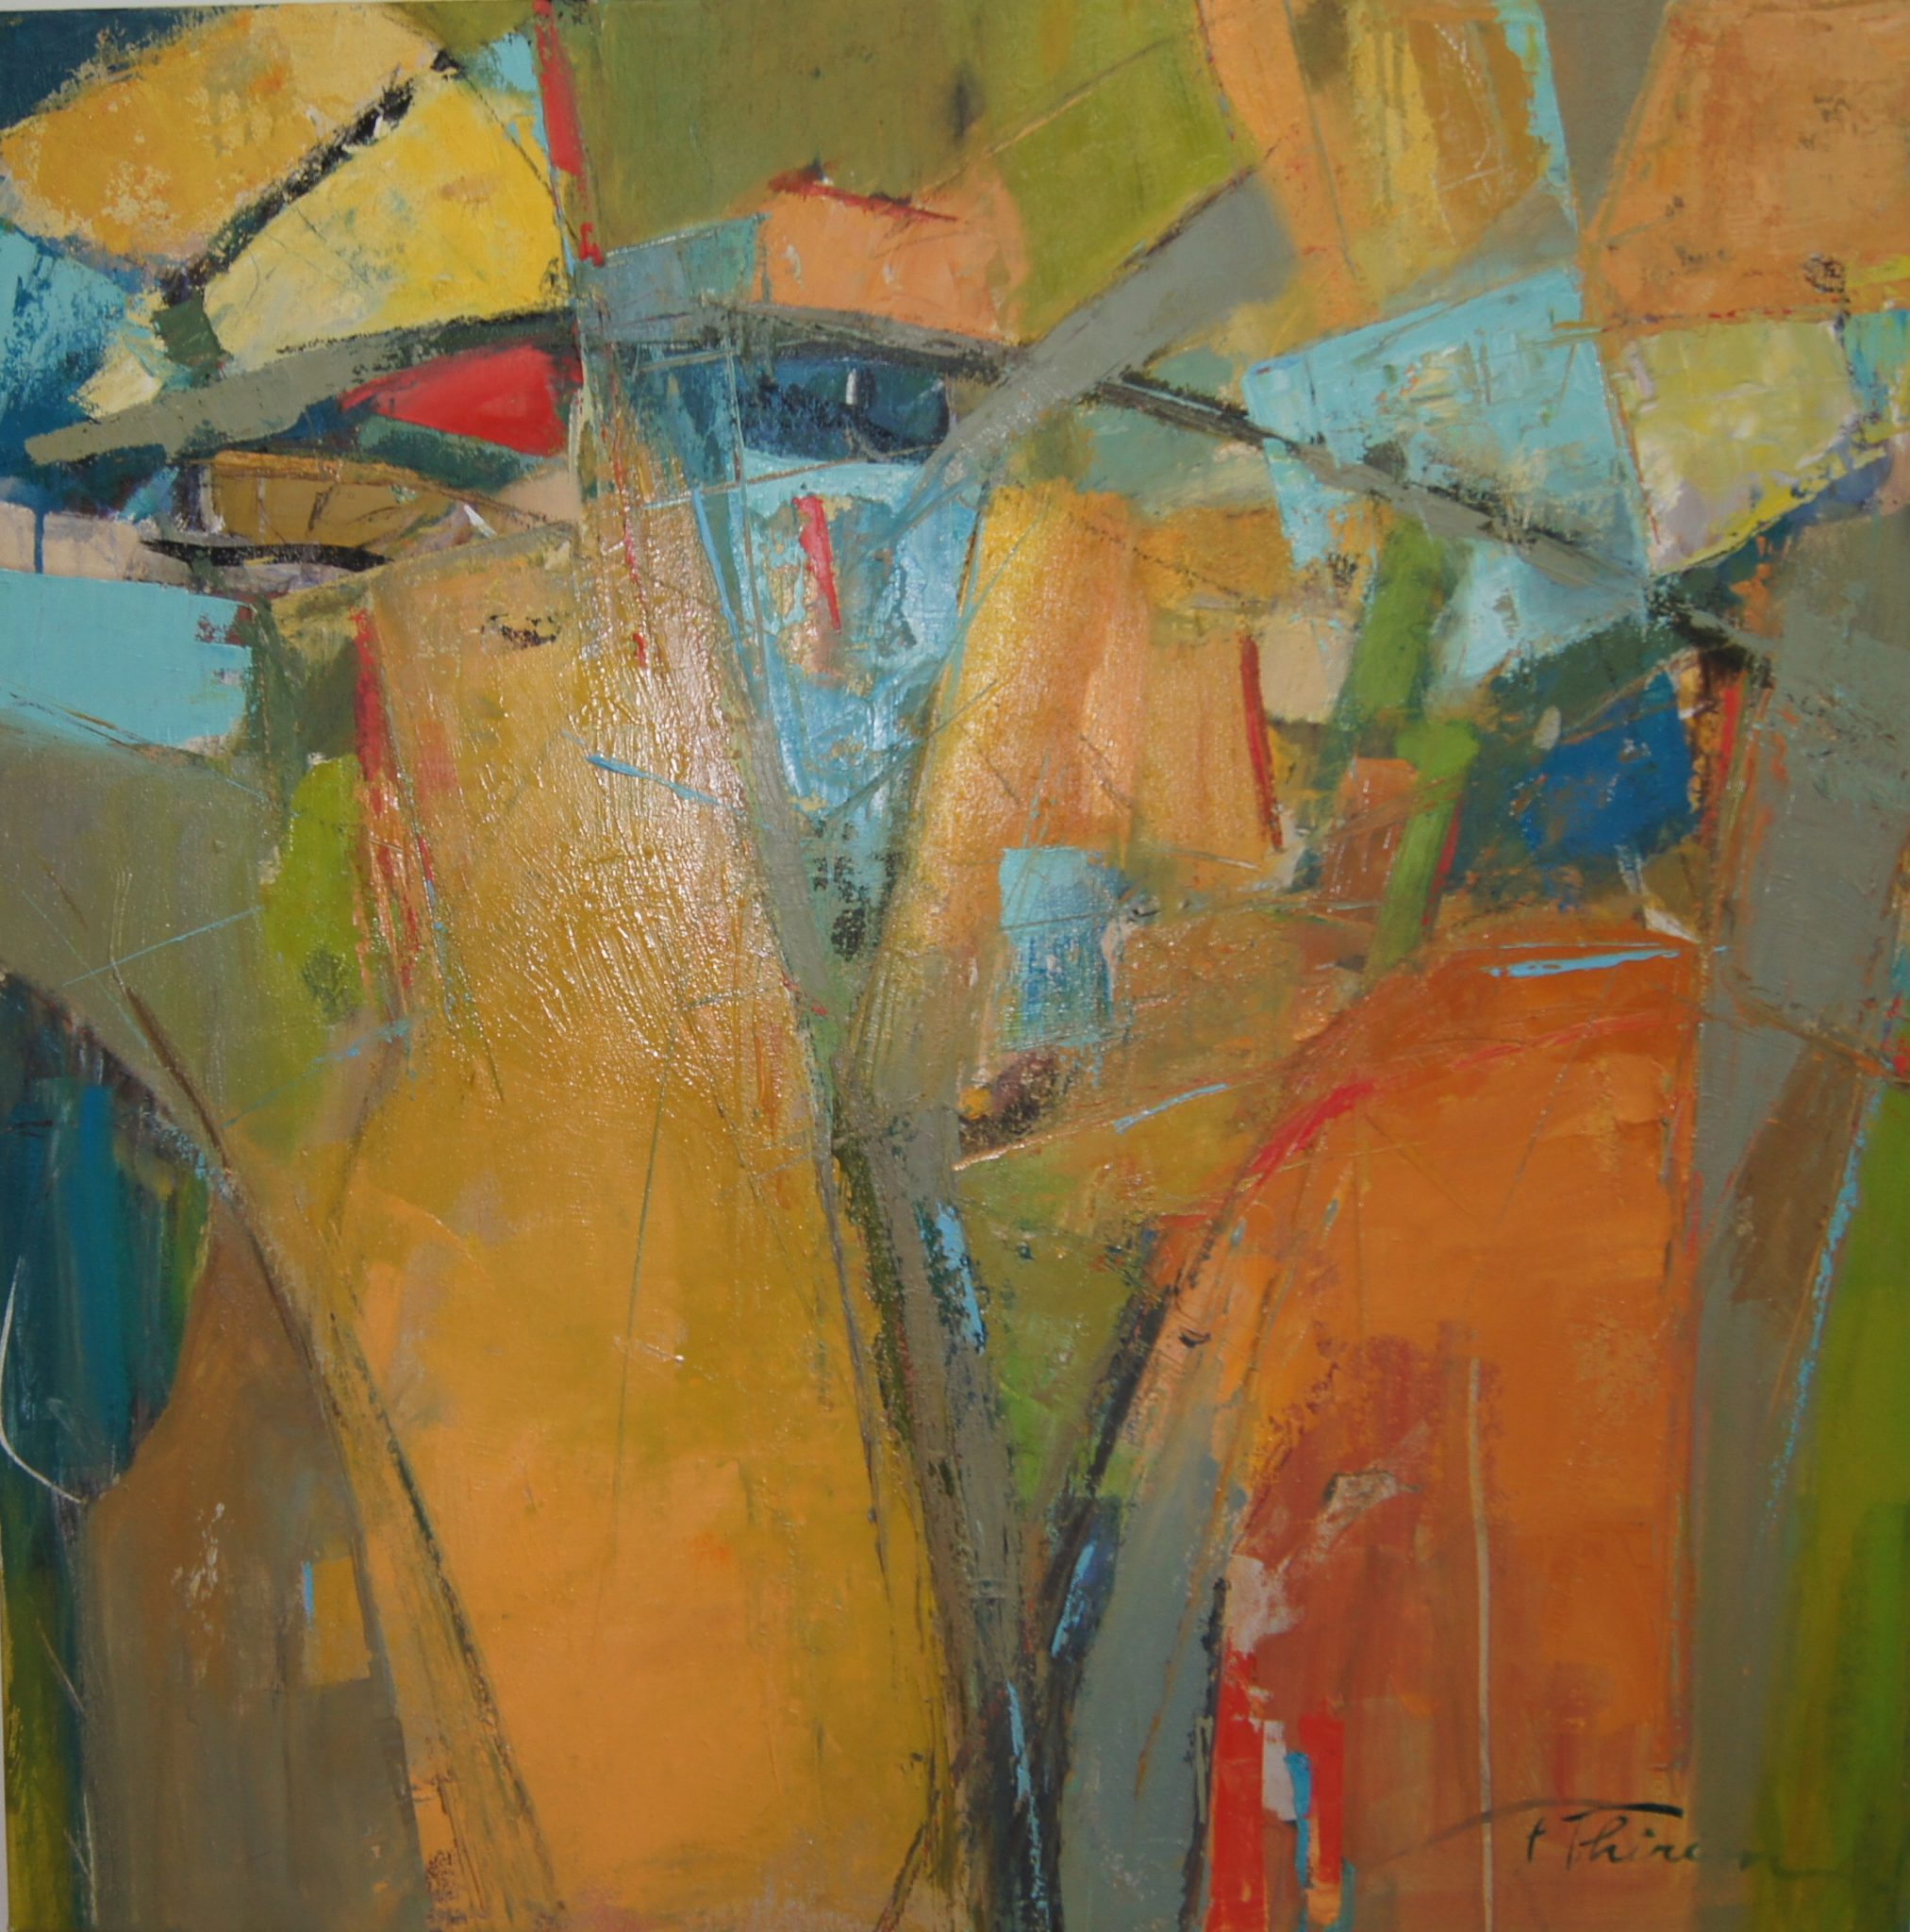 Thirion Abstract, Convergence, Oil on Canvas